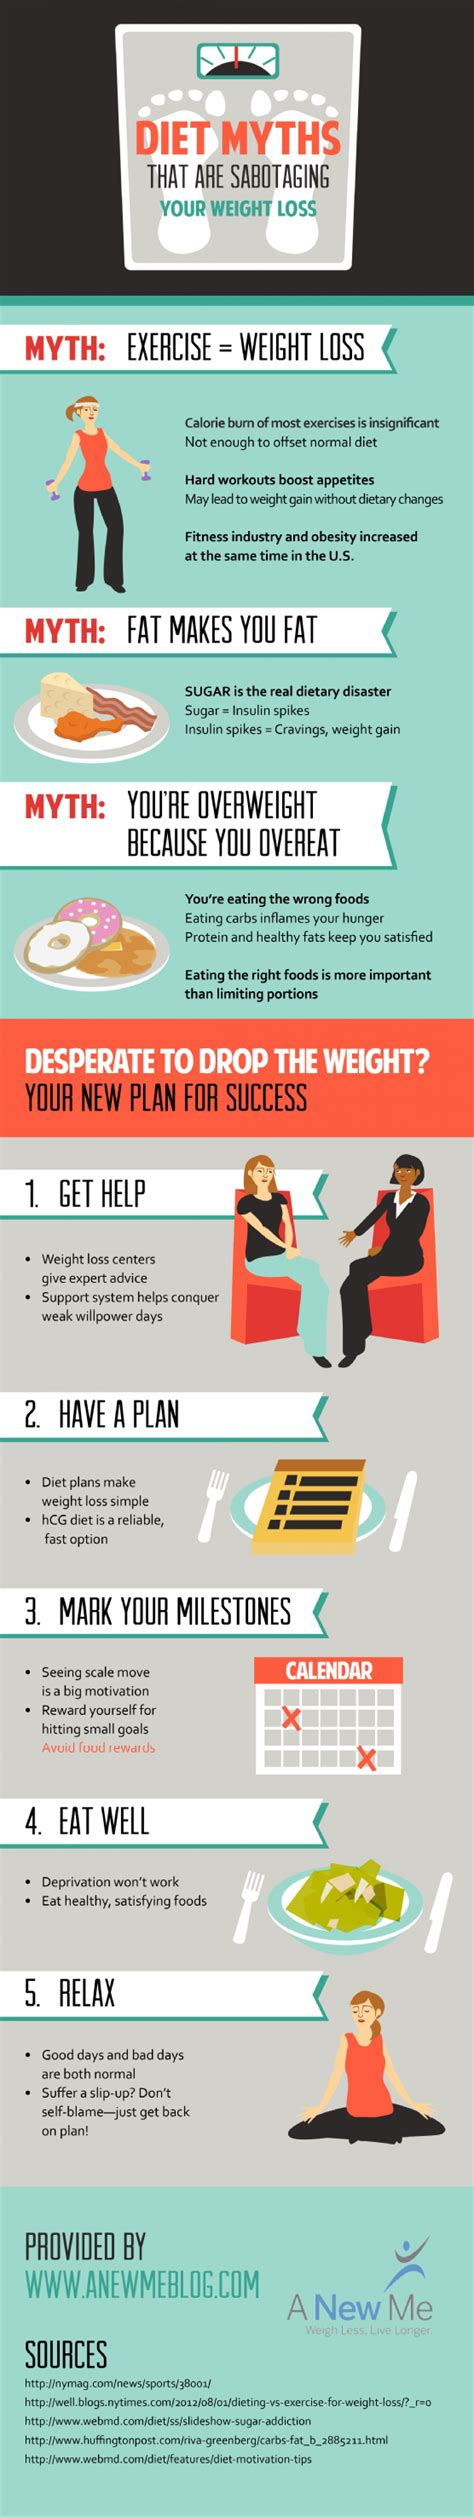 weight management infographic diet myths that are sabotaging your weight loss visual ly